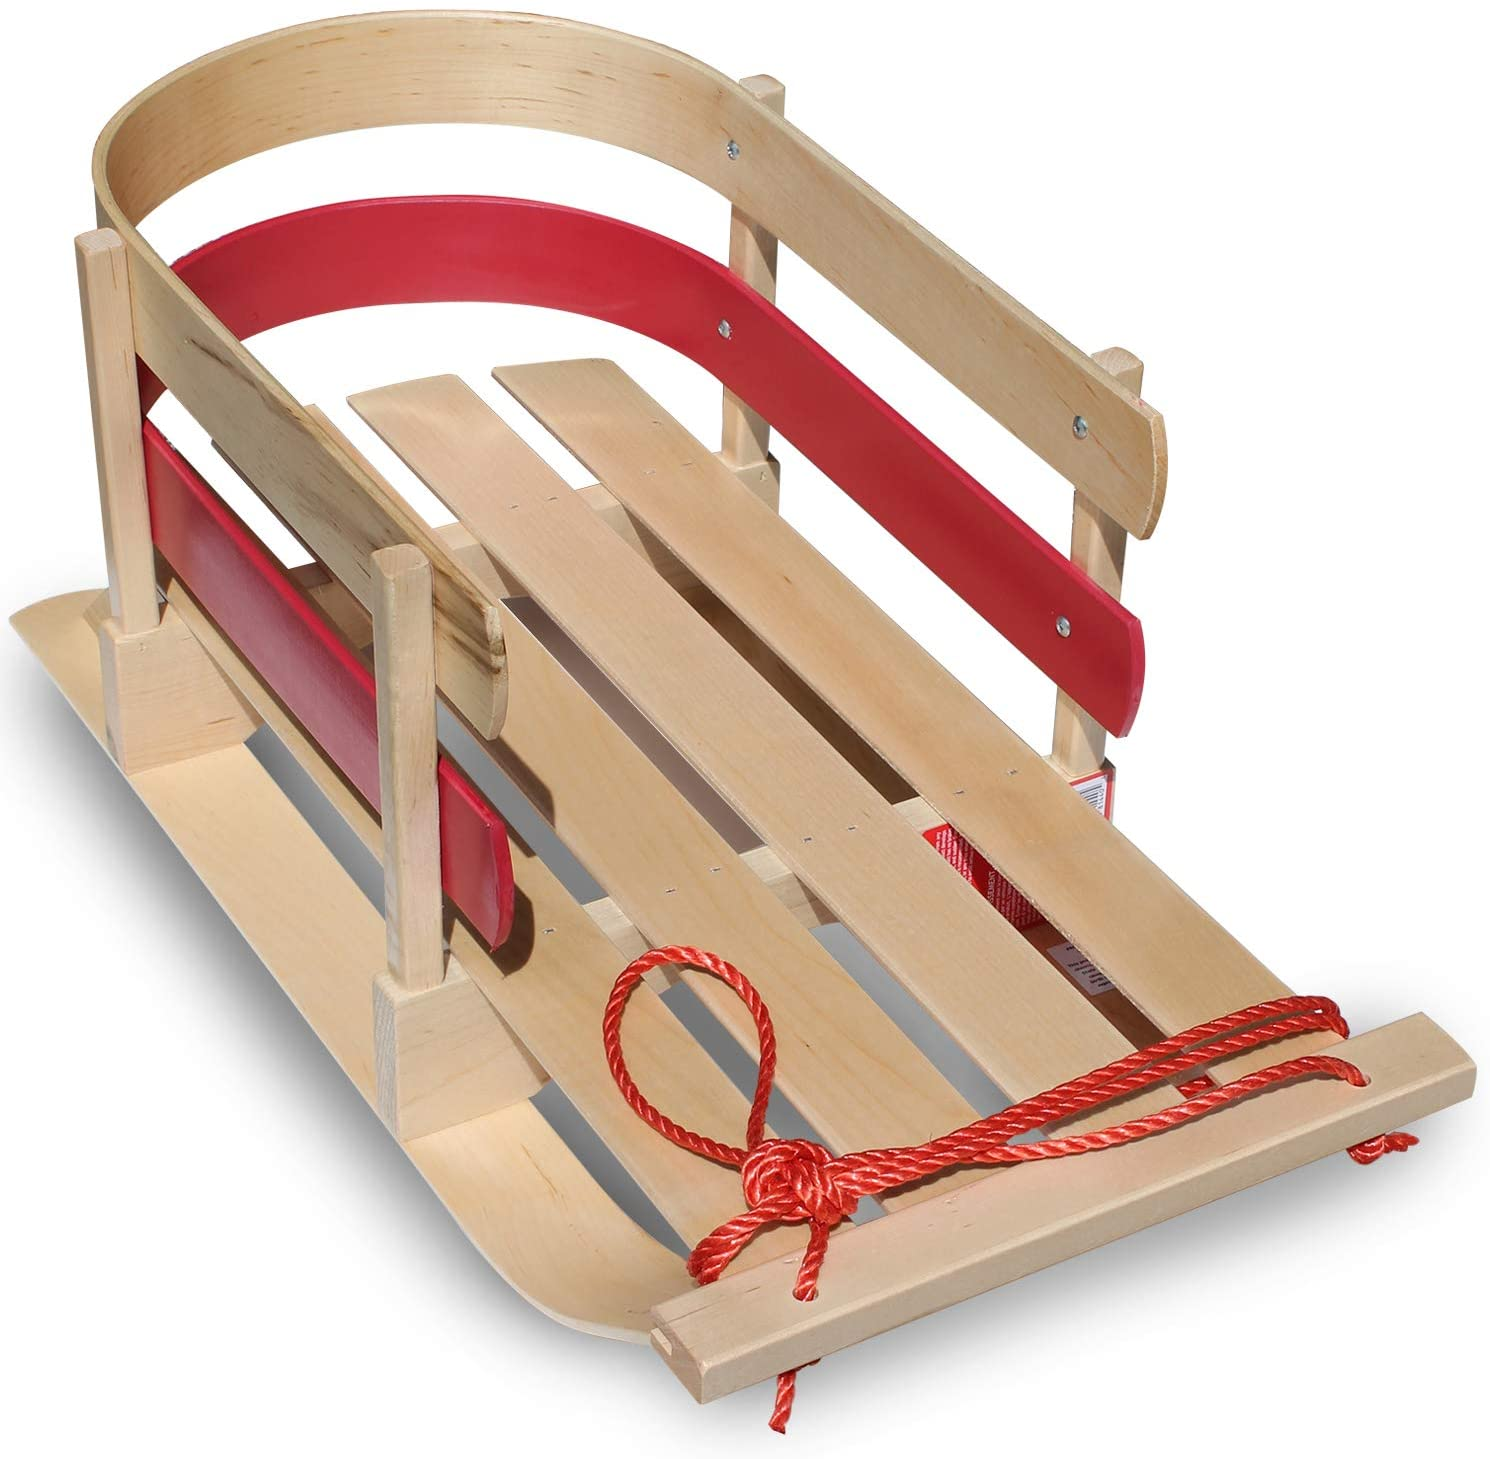 flexible flyer baby pull sled wood toddler to boggan wooden sleigh for kids